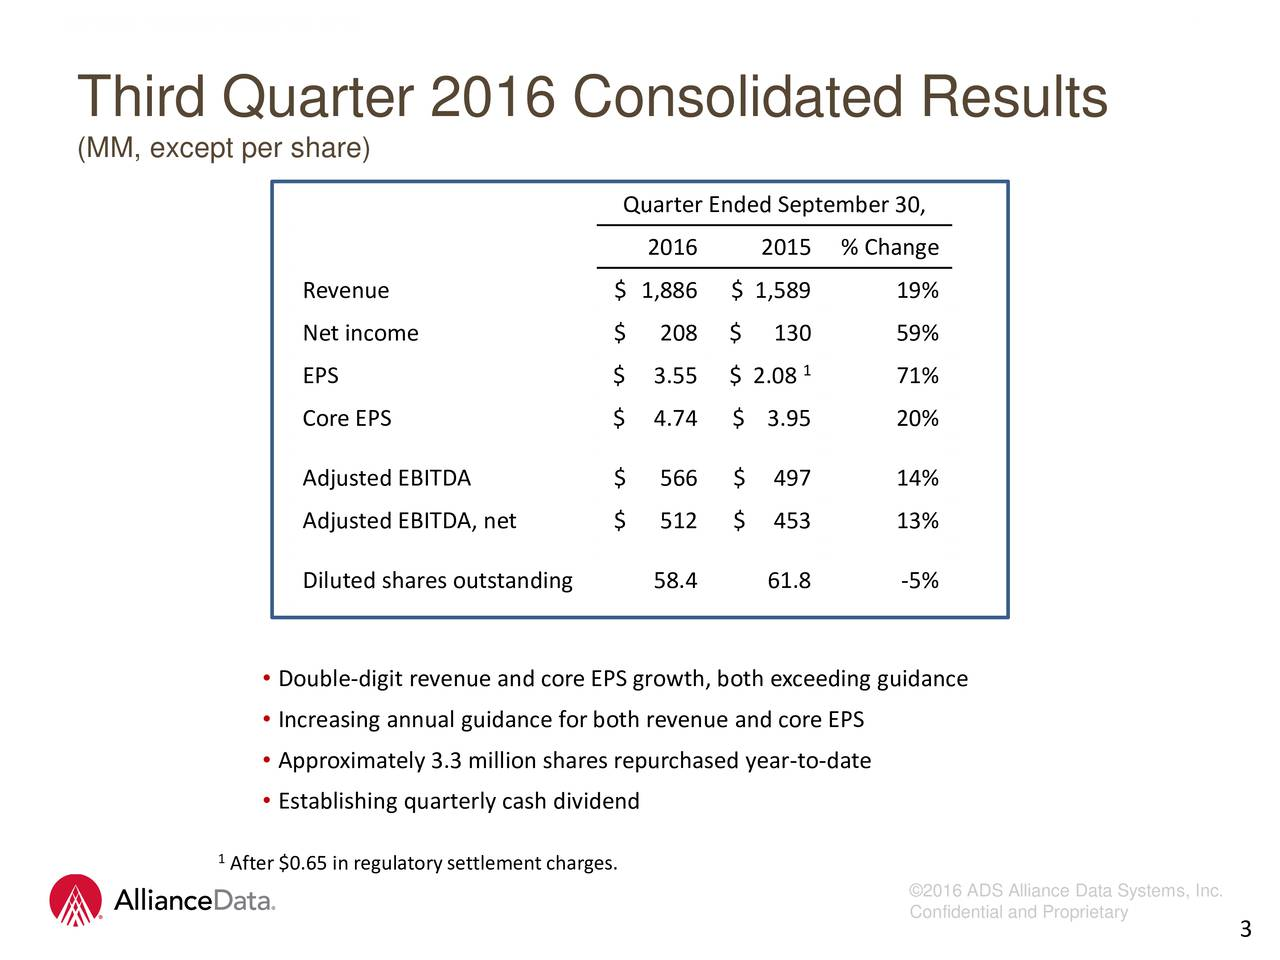 Third Quarter 2016 Consolidated Results (MM, except per share) Quarter Ended September 30, 2016 2015 % Change Revenue $ 1,886 $ 1,589 19% Net income $ 208 $ 130 59% 1 EPS $ 3.55 $ 2.08 71% Core EPS $ 4.74 $ 3.95 20% Adjusted EBITDA $ 566 $ 497 14% Adjusted EBITDA, net $ 512 $ 453 13% Diluted shares outstanding 58.4 61.8 -5% Double-digit revenue and core EPS growth, both exceeding guidance Increasing annual guidance for both revenue and core EPS Approximately 3.3 million shares repurchased year-to-date Establishing quarterly cash dividend 1After $0.65 in regulatorysettlement charges. 2016 ADS Alliance Data Systems, Inc. Confidential and Proprietary 3